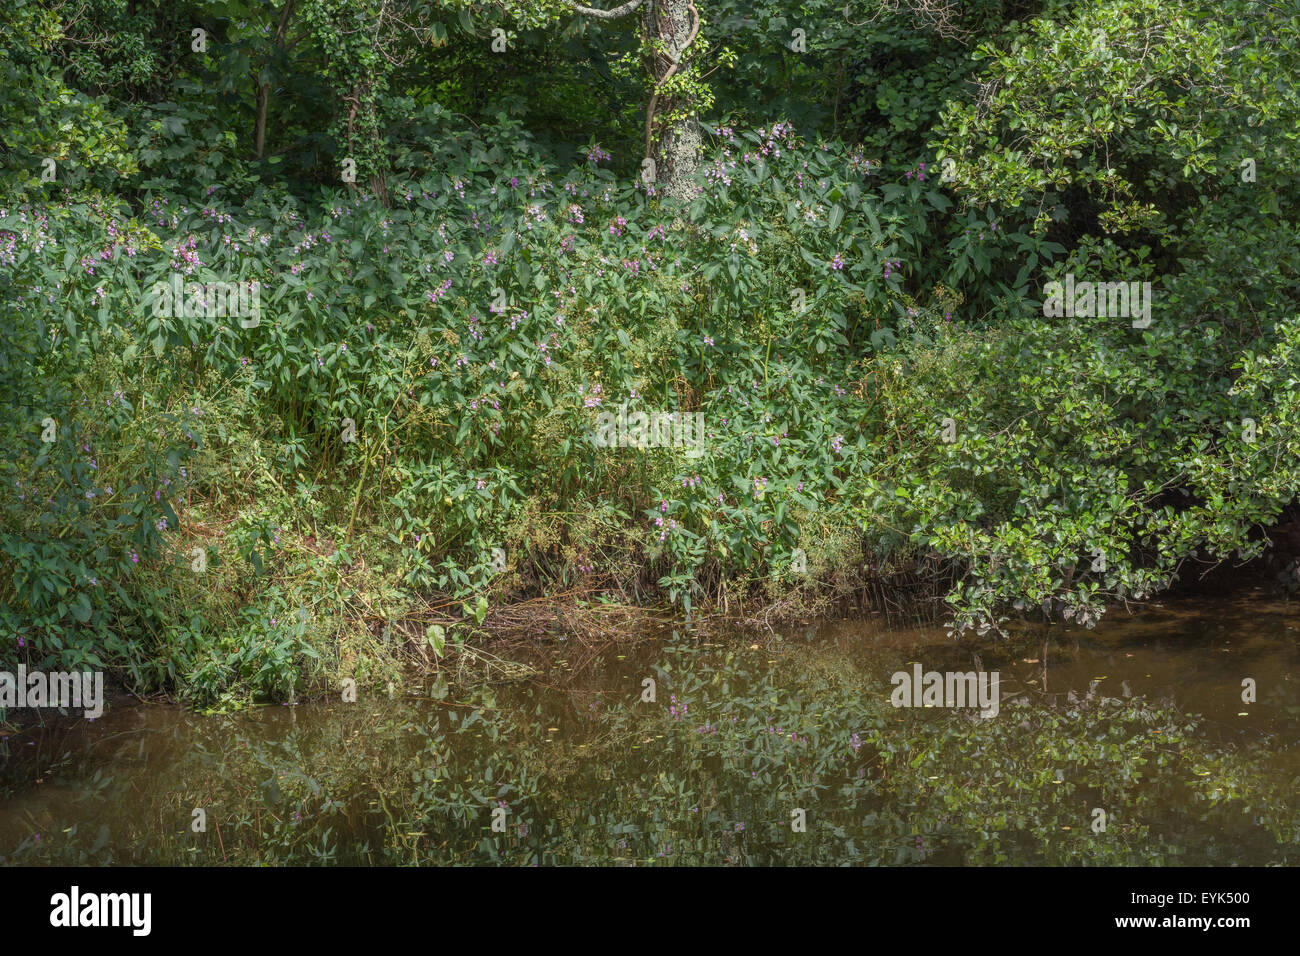 Indian Balsam / Himalayan balsam / Impatiens glandulifera. Invasive weed with affinity for damp and moist soils. Stock Photo